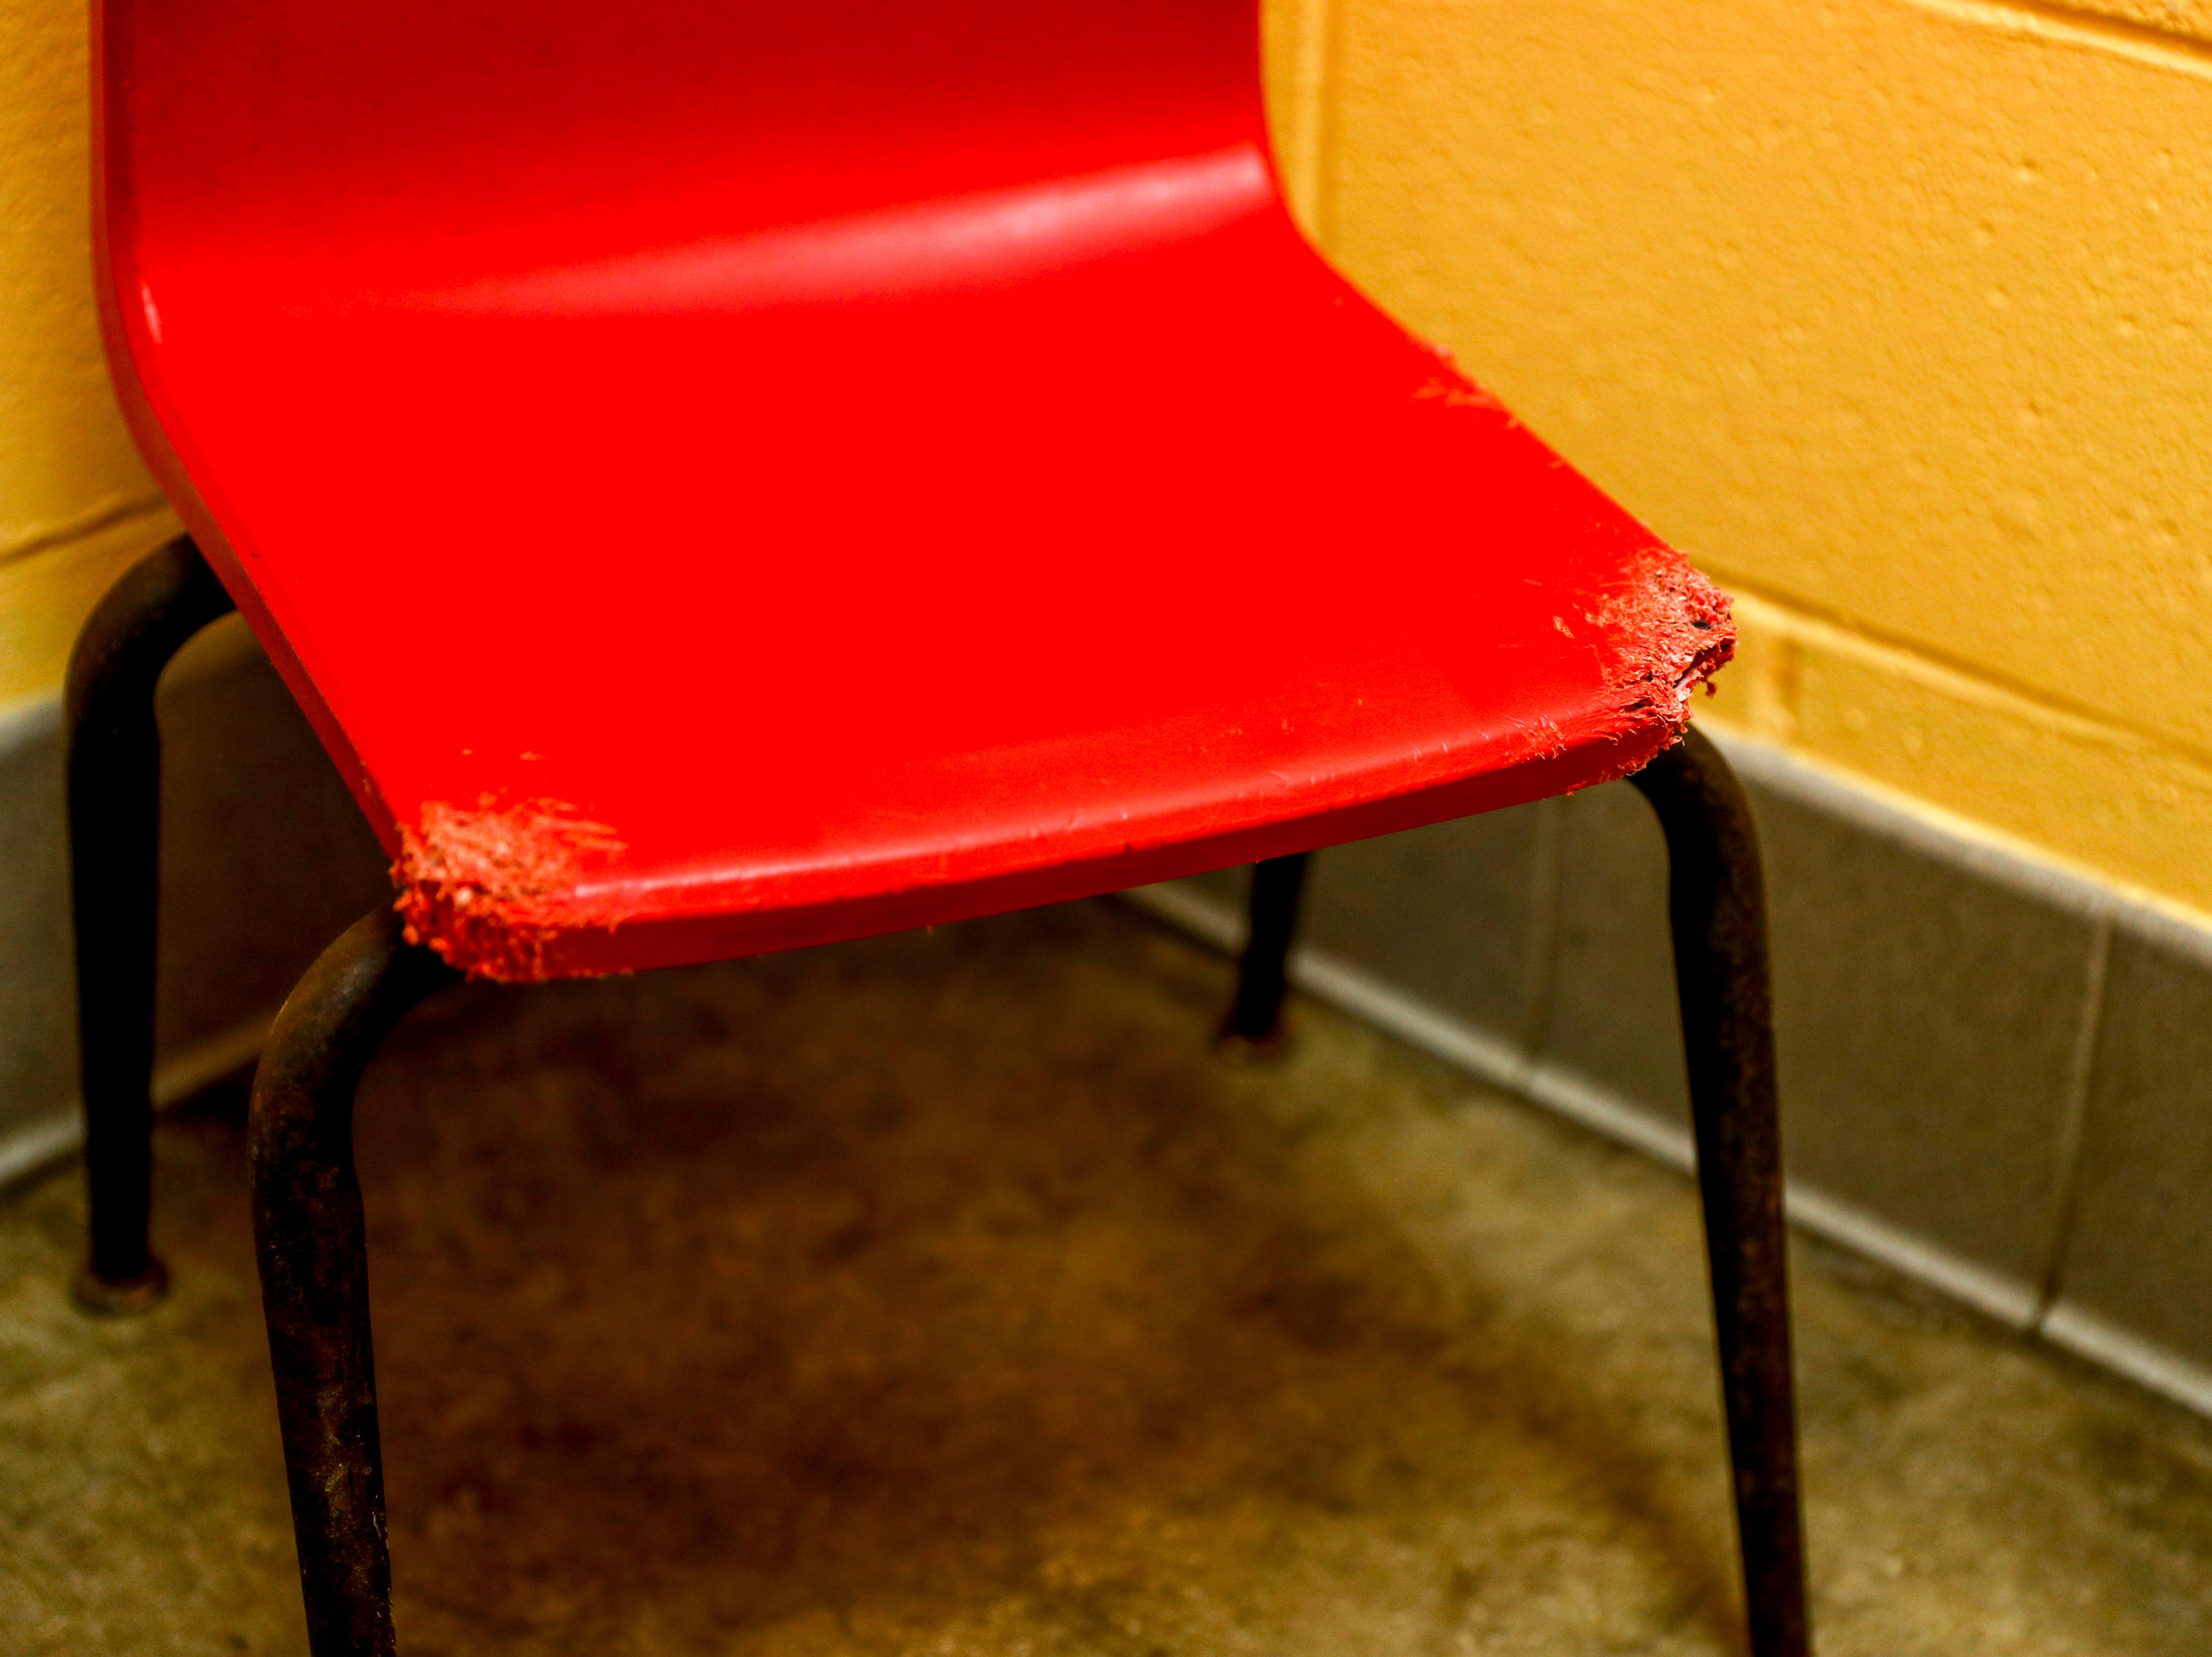 In the visiting or examination room, a small chair for visitors sits with chew marks in the corner at Montgomery County Animal Care and Control in Clarksville, Tenn., on Wednesday, March 13, 2019.